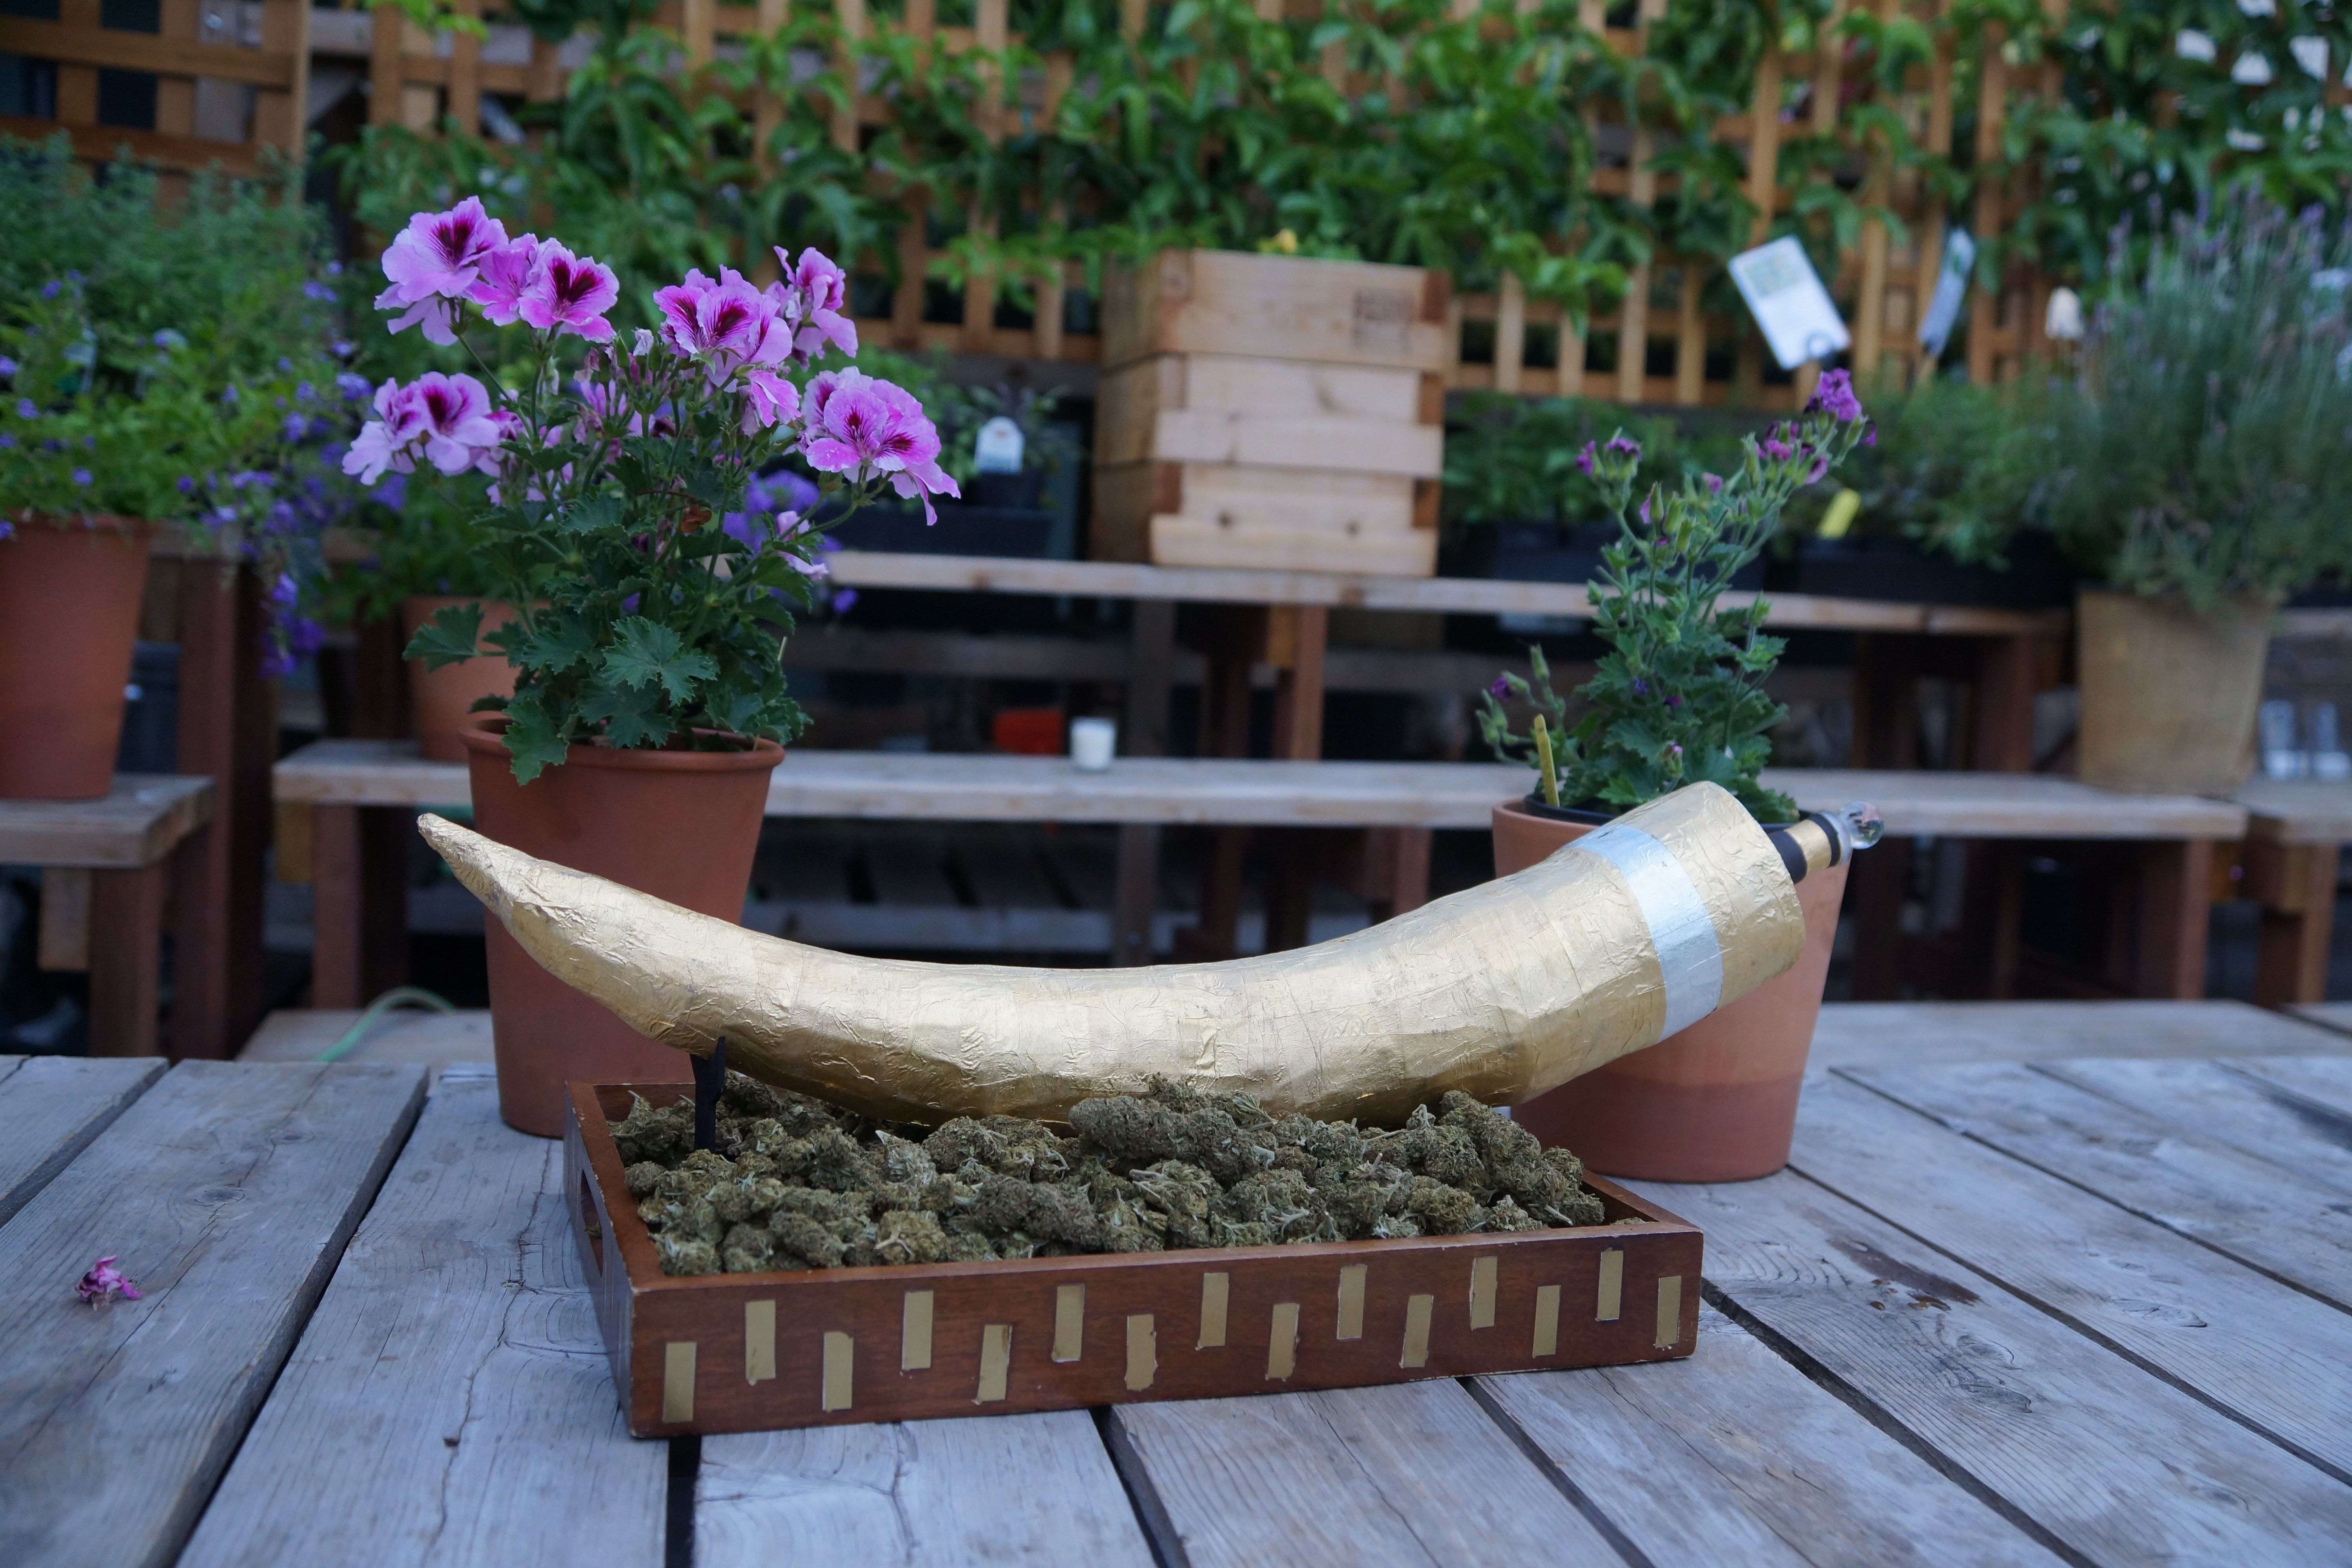 Marijuana Joint Worth $24,000 Is Literal Definition Of Financial